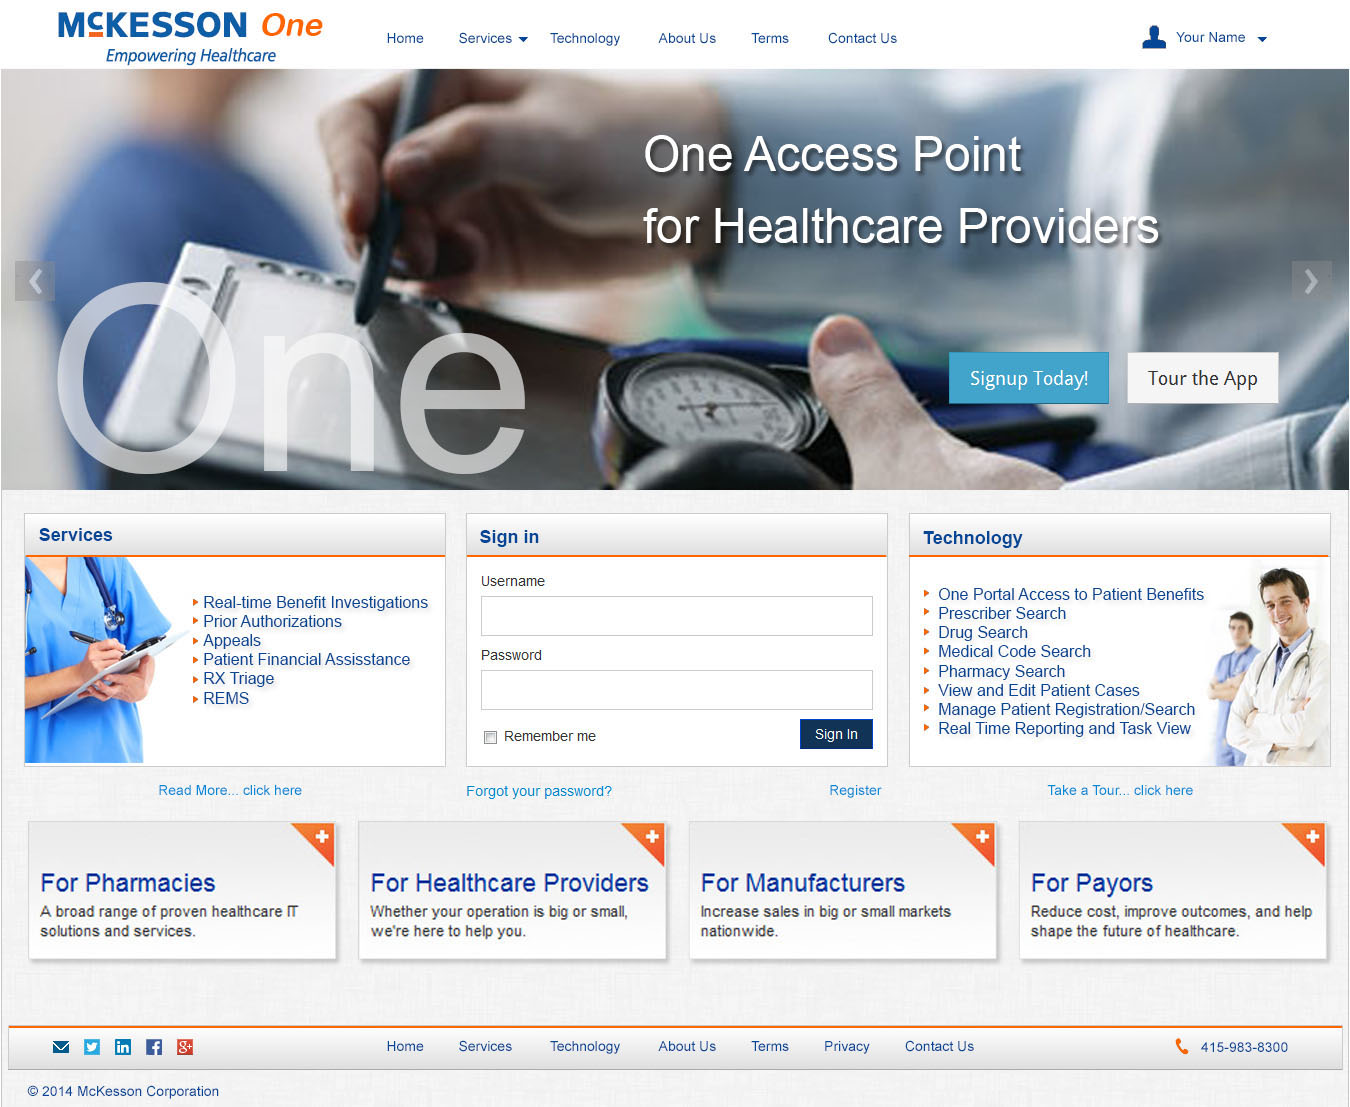 McKesson One Welcome Page